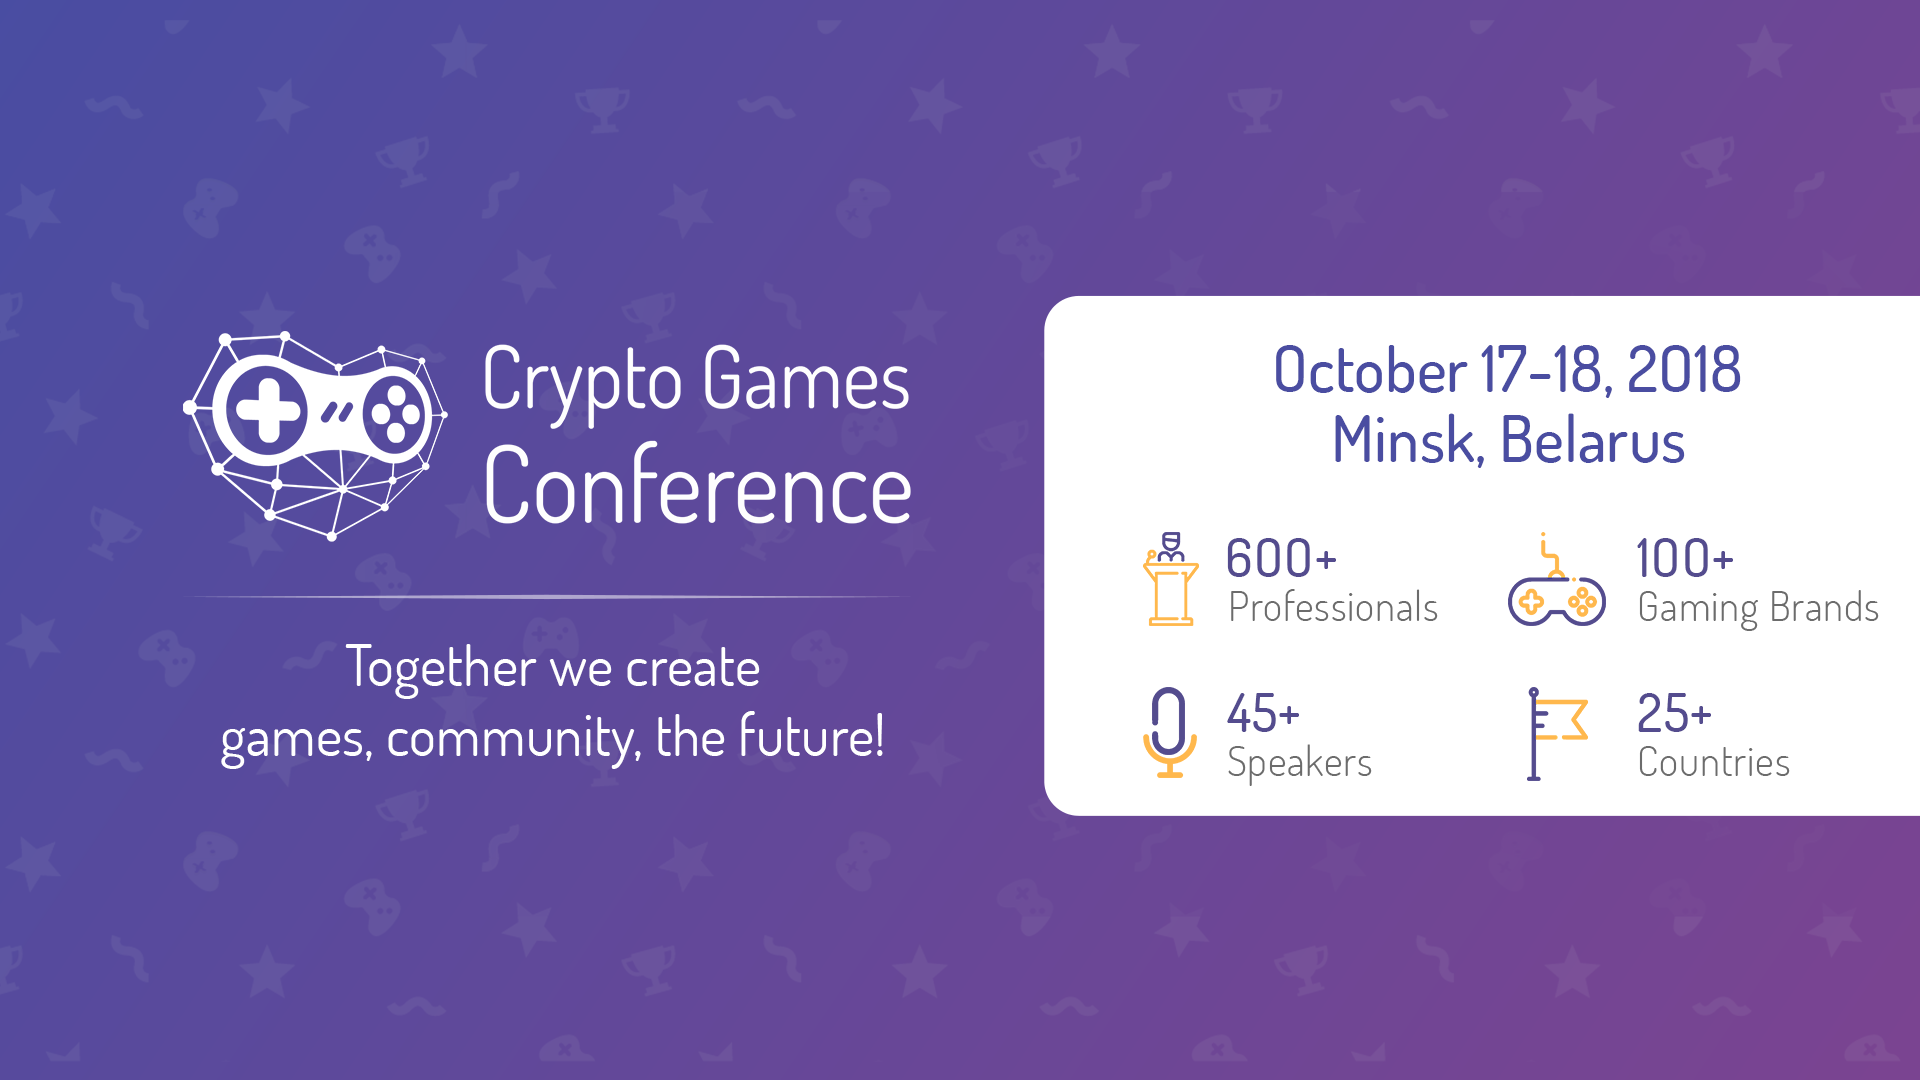 Crypto Games Conference 2018